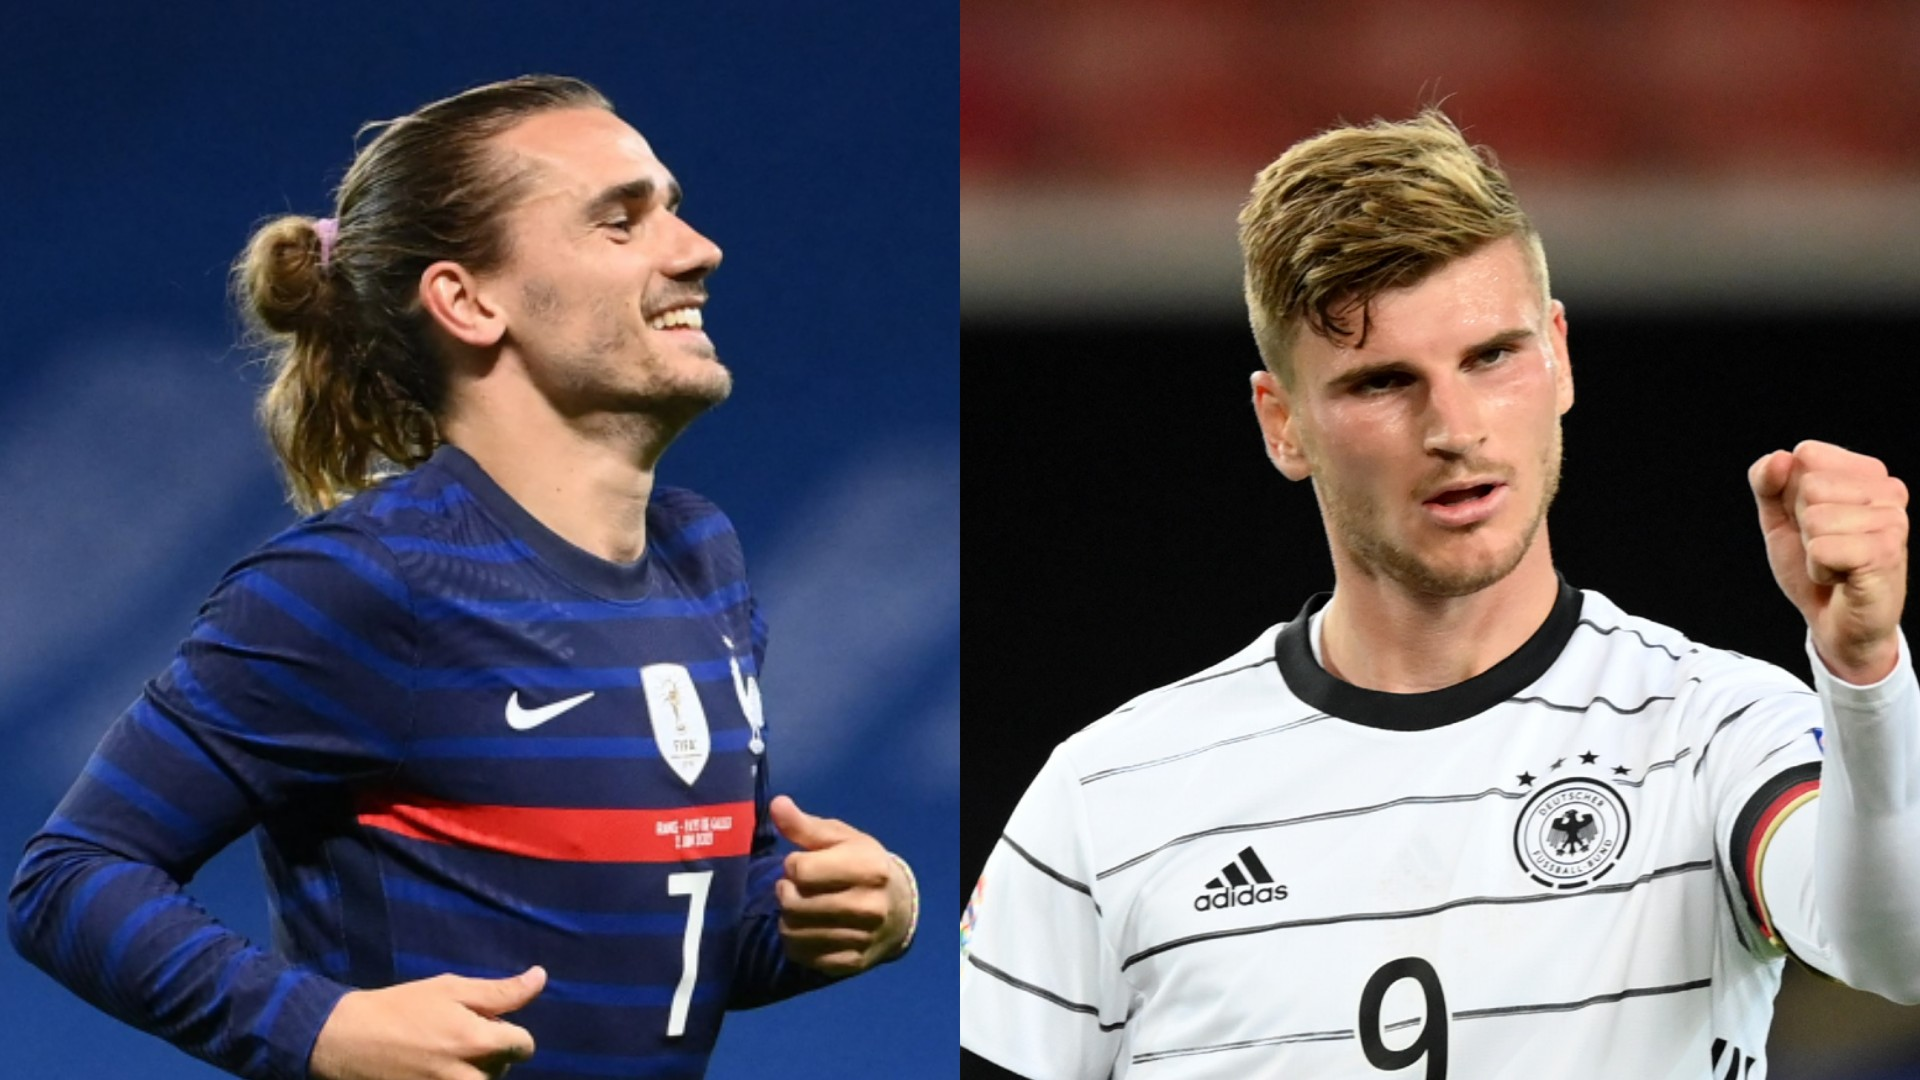 Video: Germany v France preview - Heavyweights clash in Munich